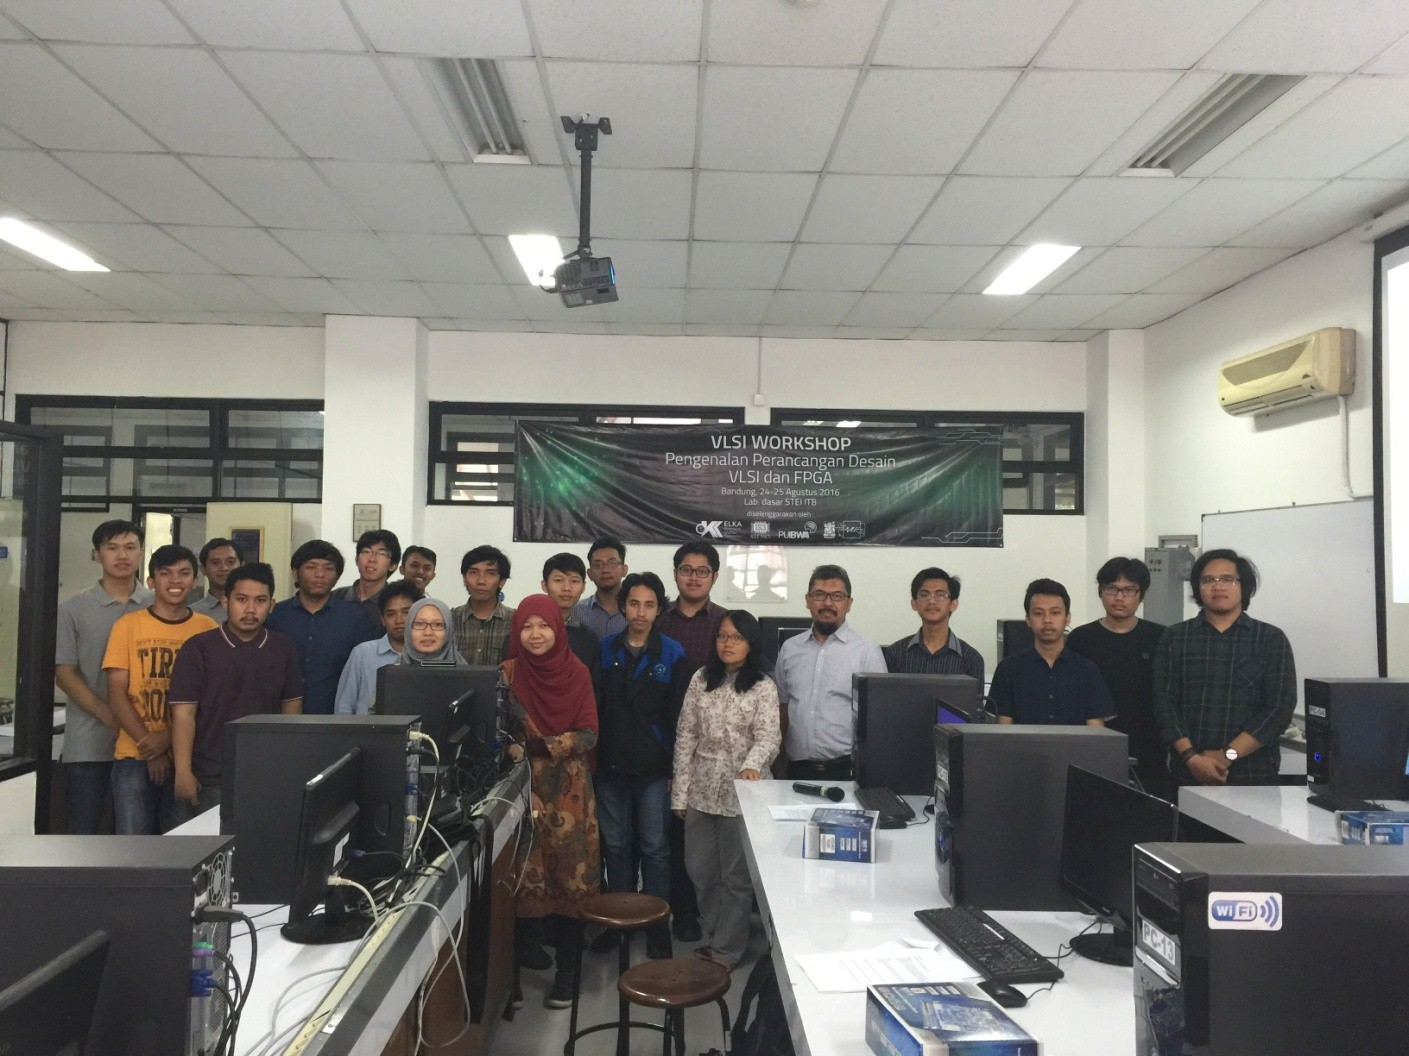 2016 VLSI WORKSHOP  Introduction to VLSI Design and FPGA in ITB